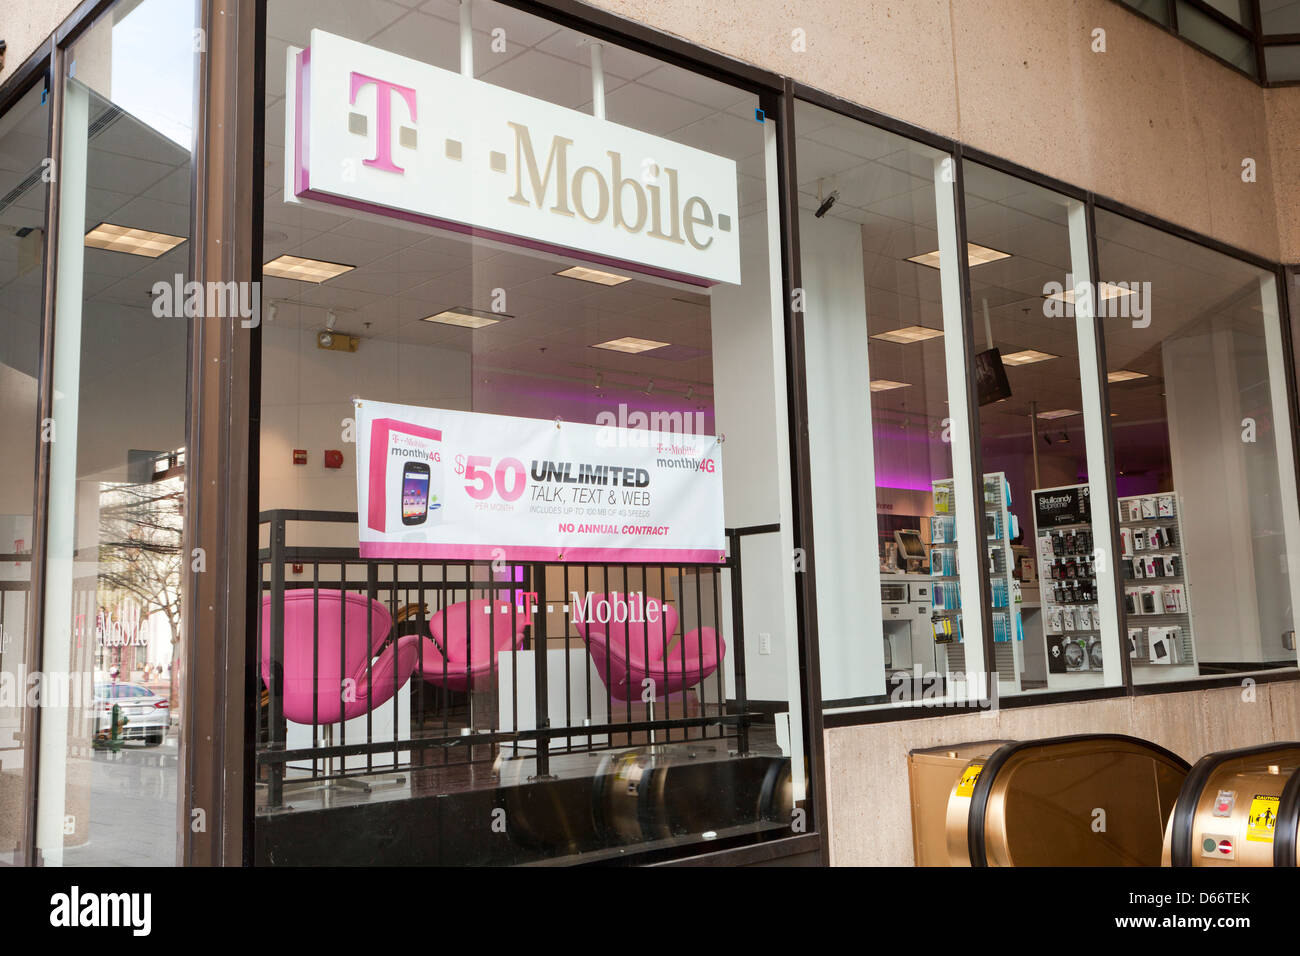 T Mobile retail store - Stock Image